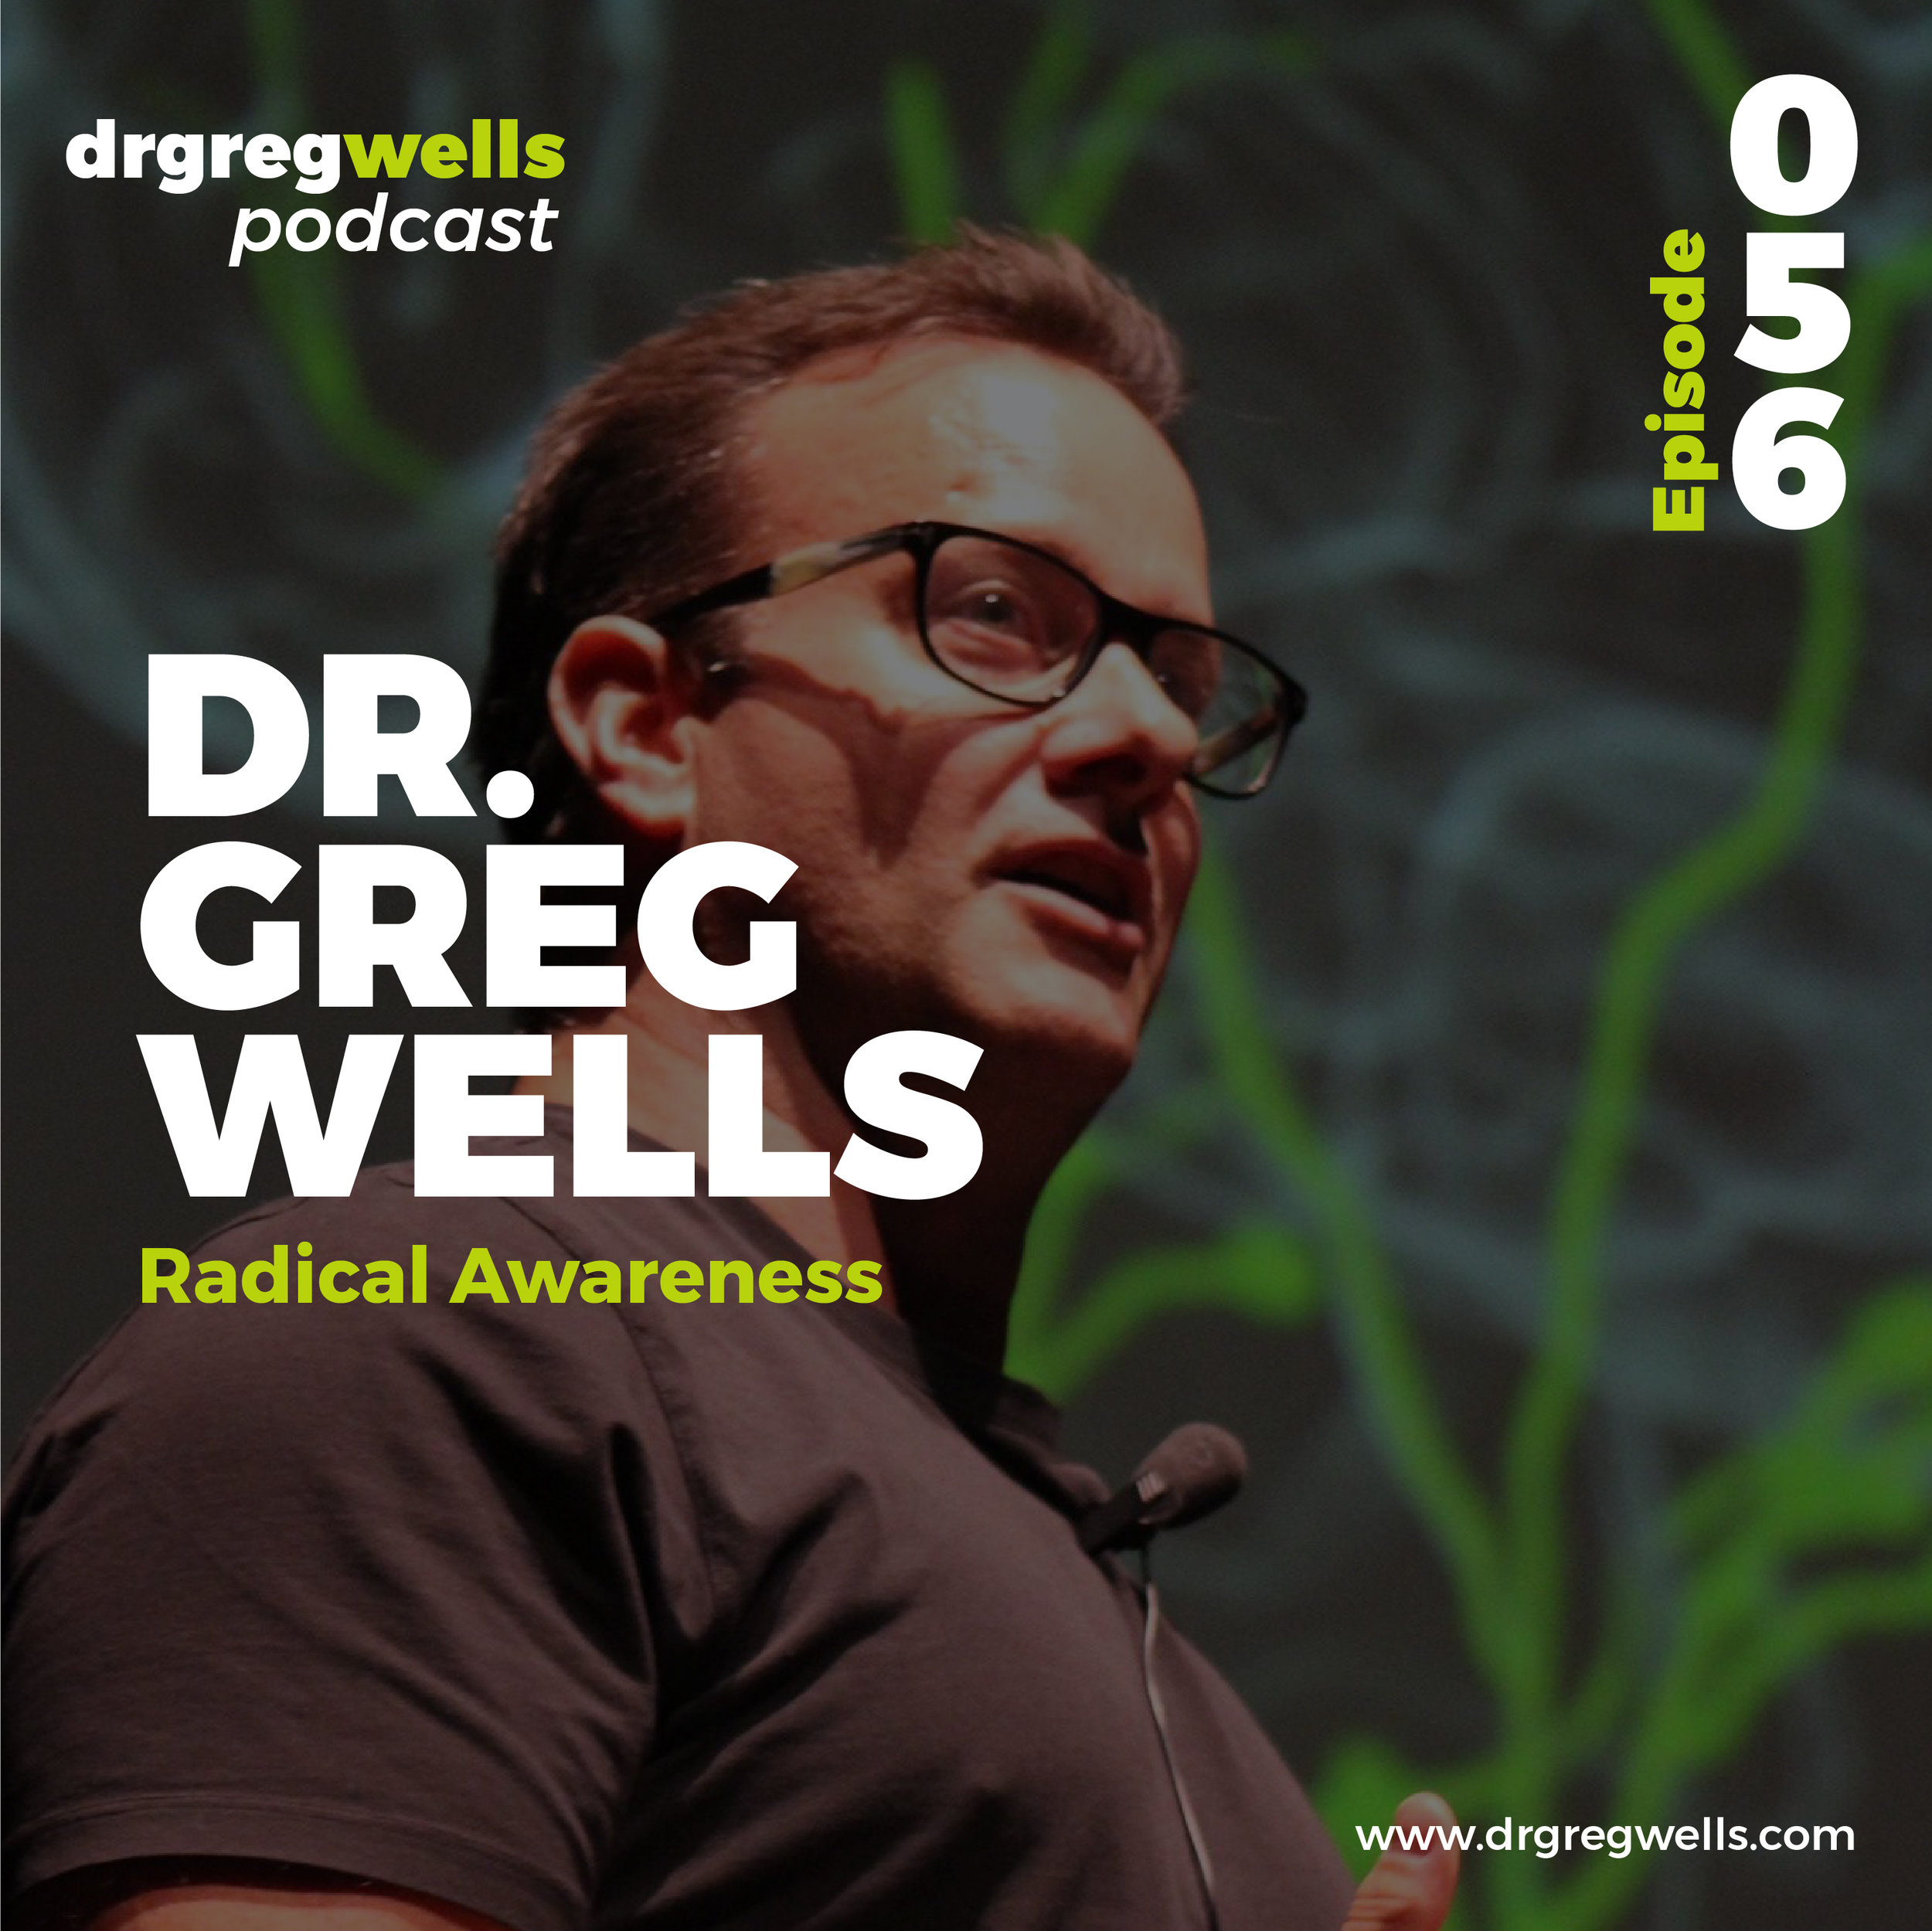 Dr Greg Wells Podcast Guest EP 55-57-02.jpg